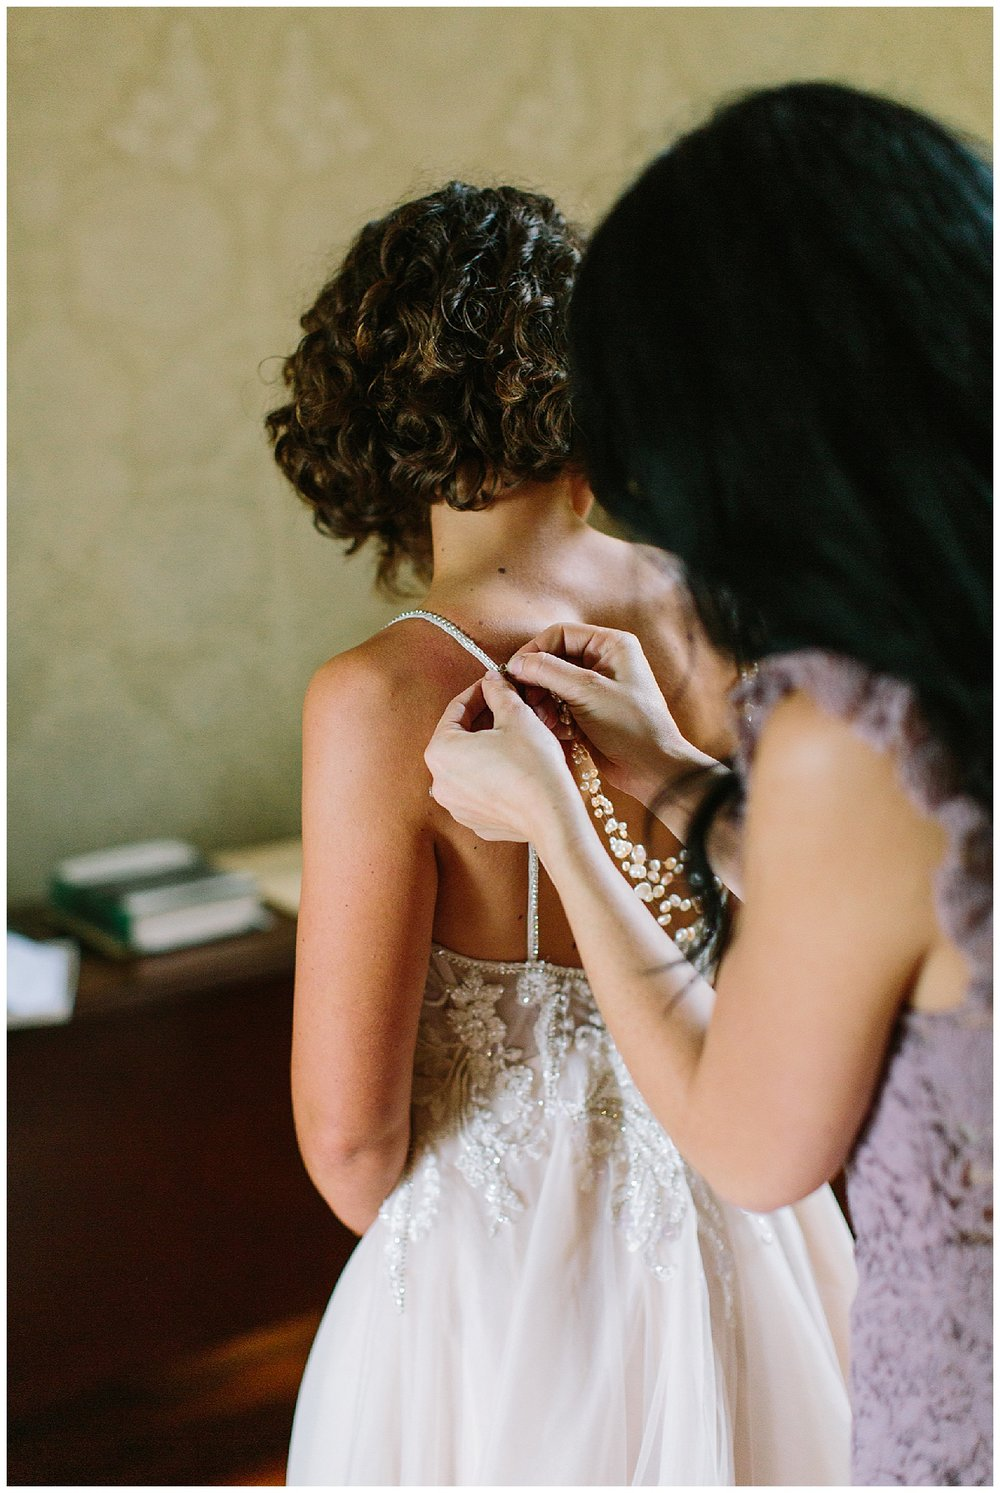 trent.and.kendra.photography.wedding.louisville-52.jpg